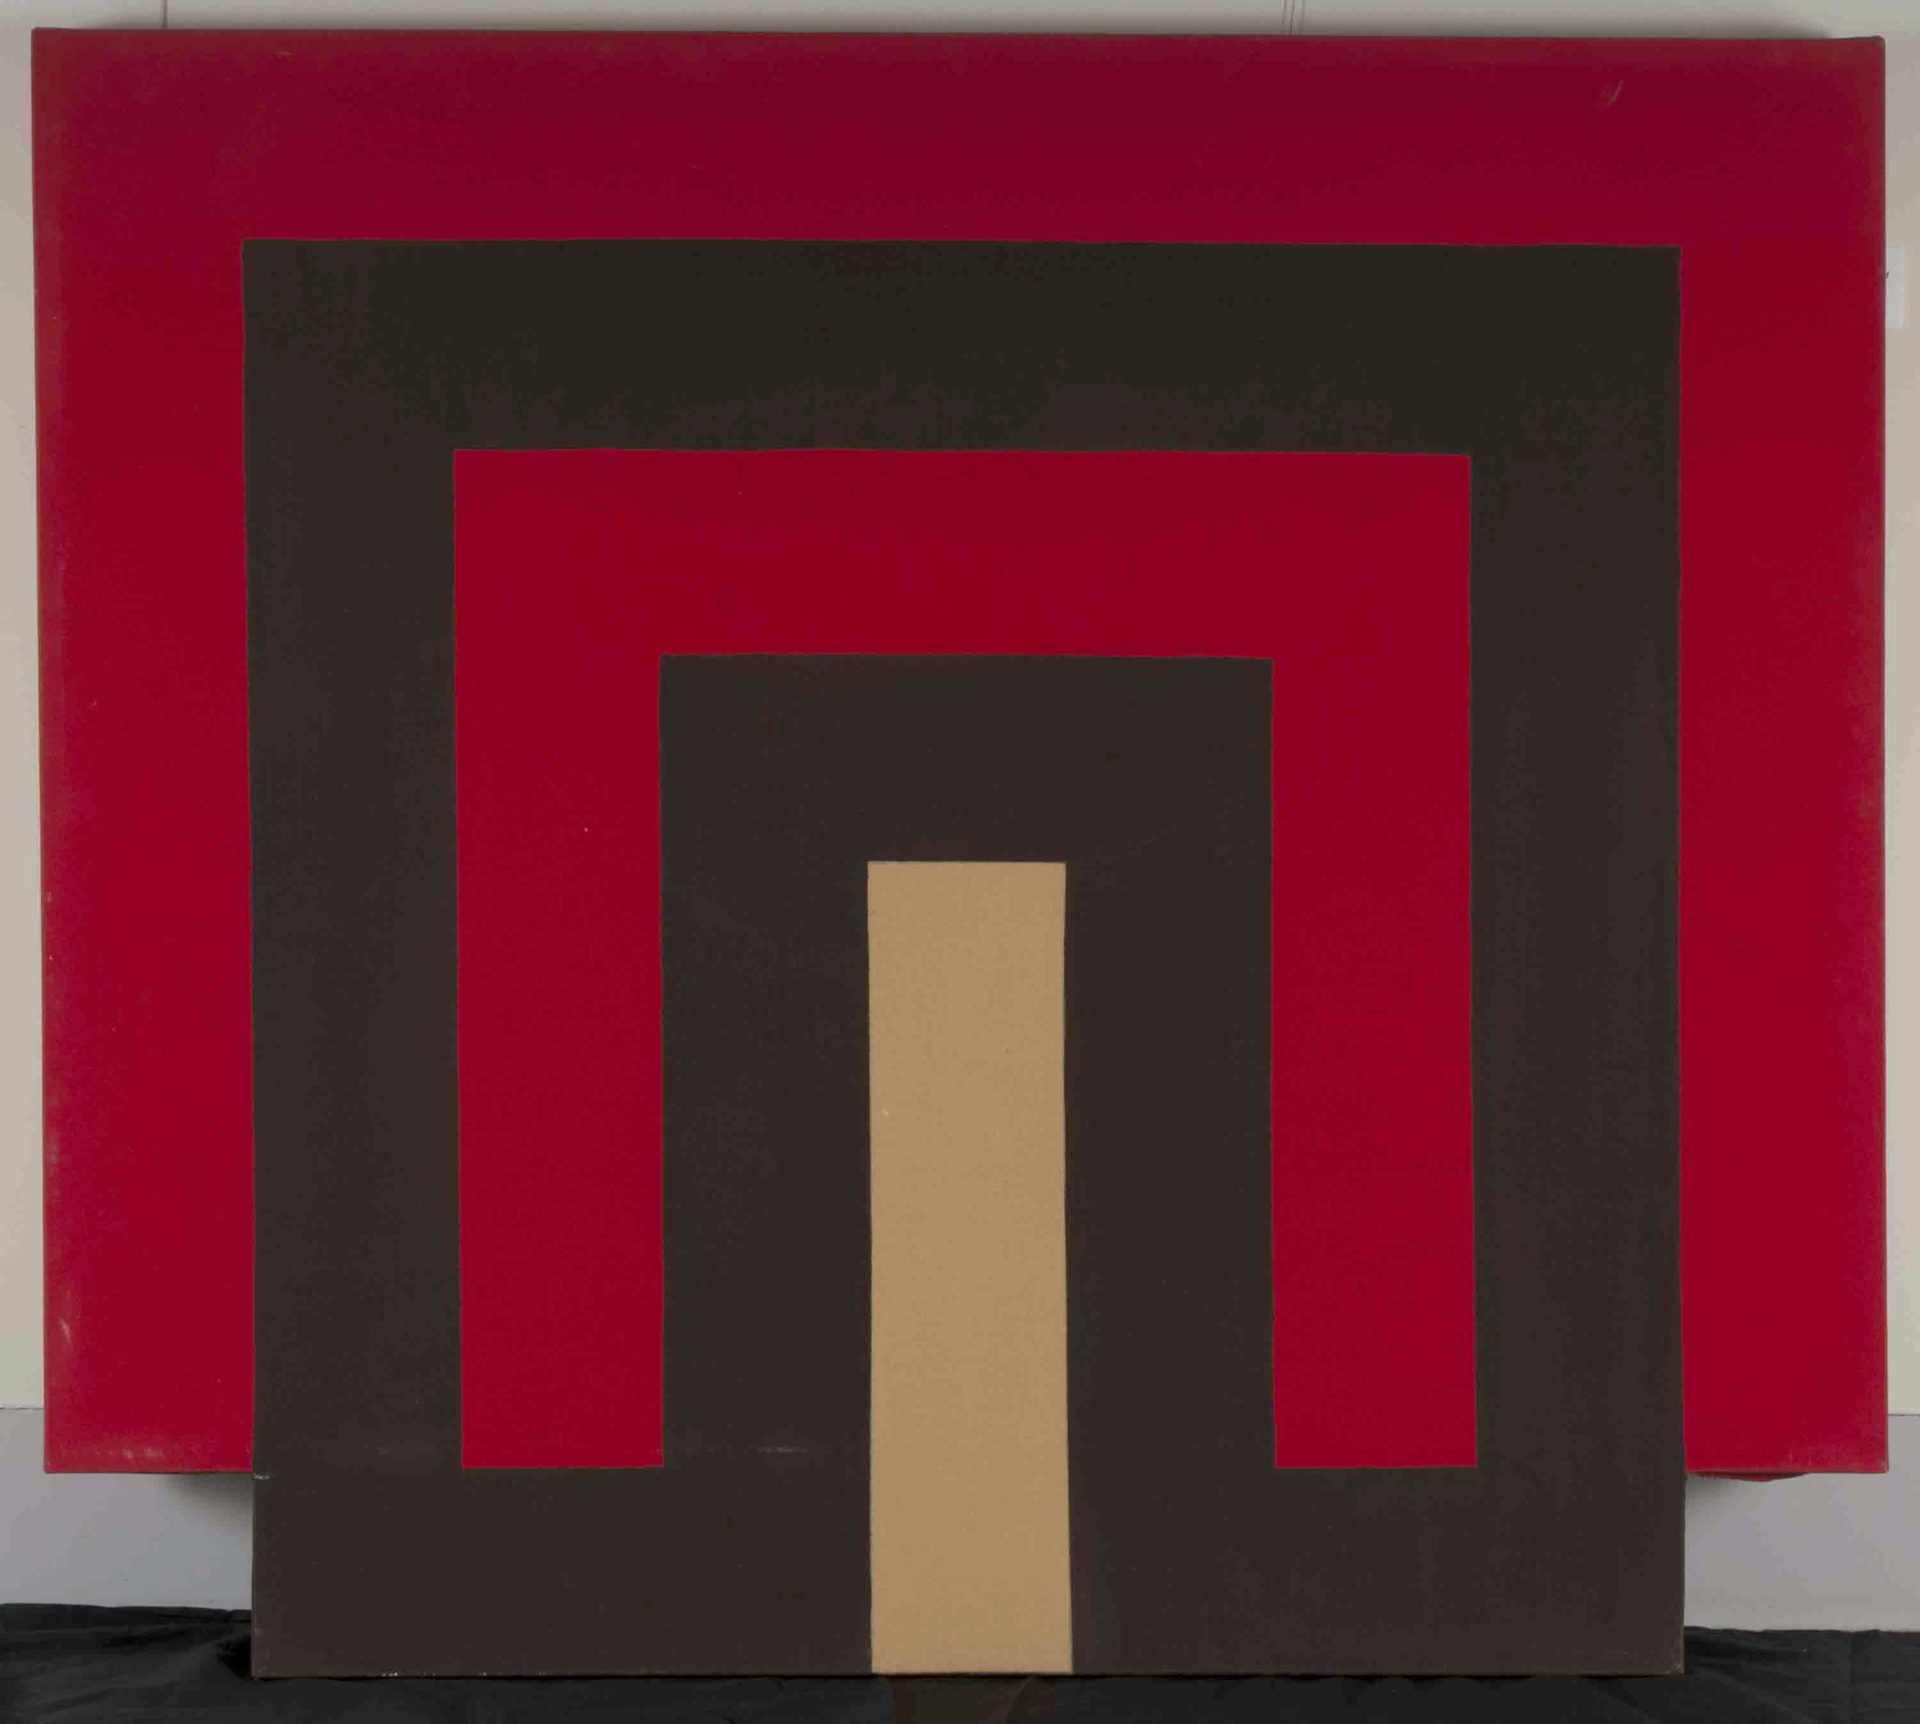 Michael Johnson, 'Untitled', 1967, synthetic polymer paint on canvas, Gift of Chandler Coventry Collection